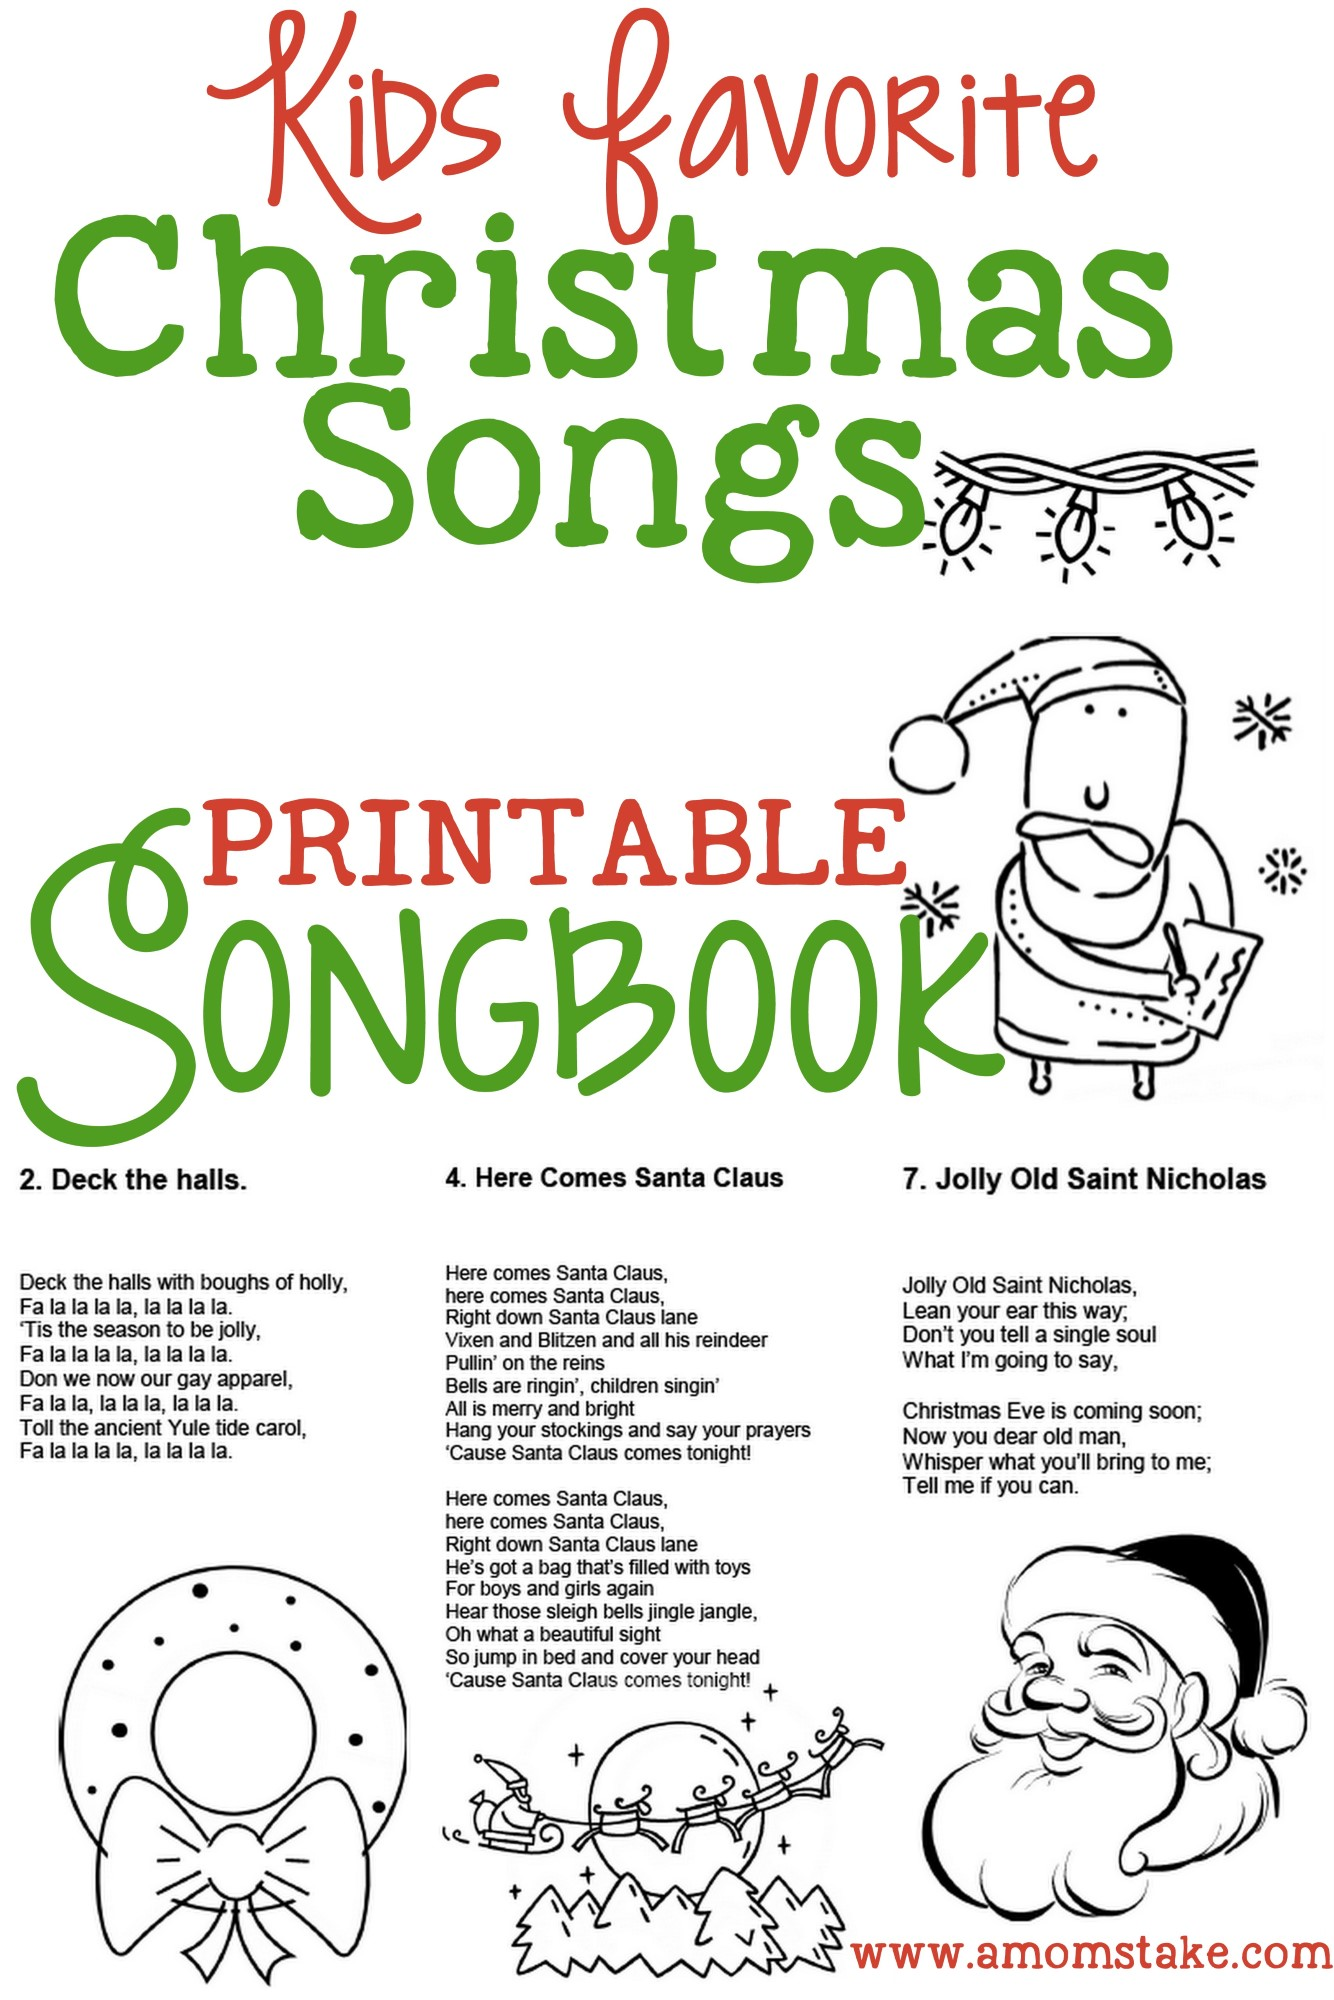 6 Images of Printable Christmas Song Book